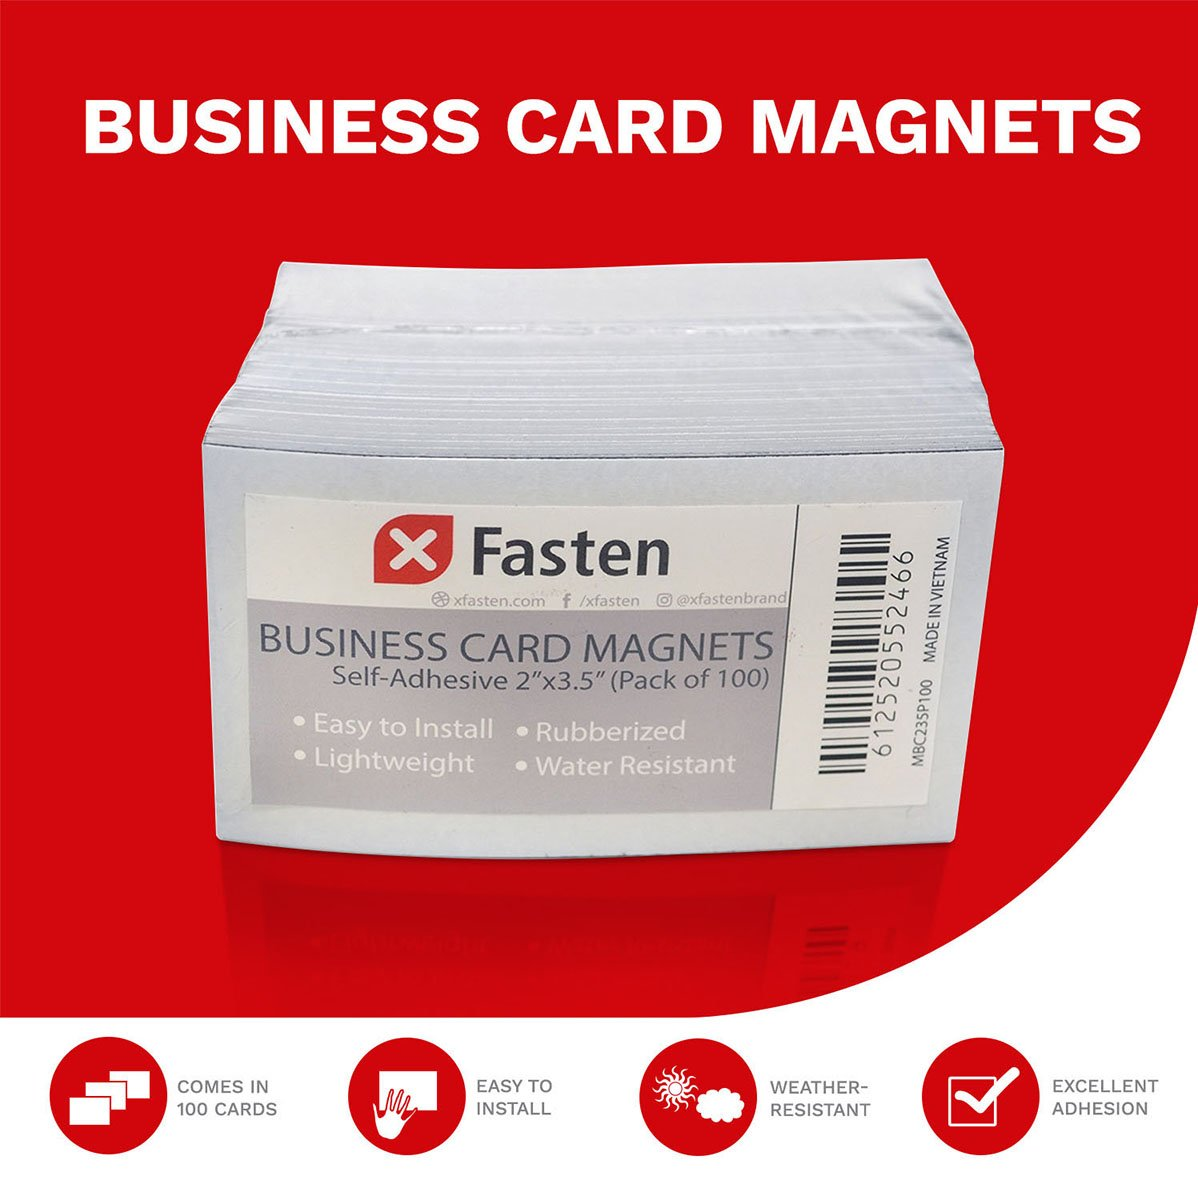 Amazon xfasten self adhesive business card magnets pack of amazon xfasten self adhesive business card magnets pack of 100 office products colourmoves